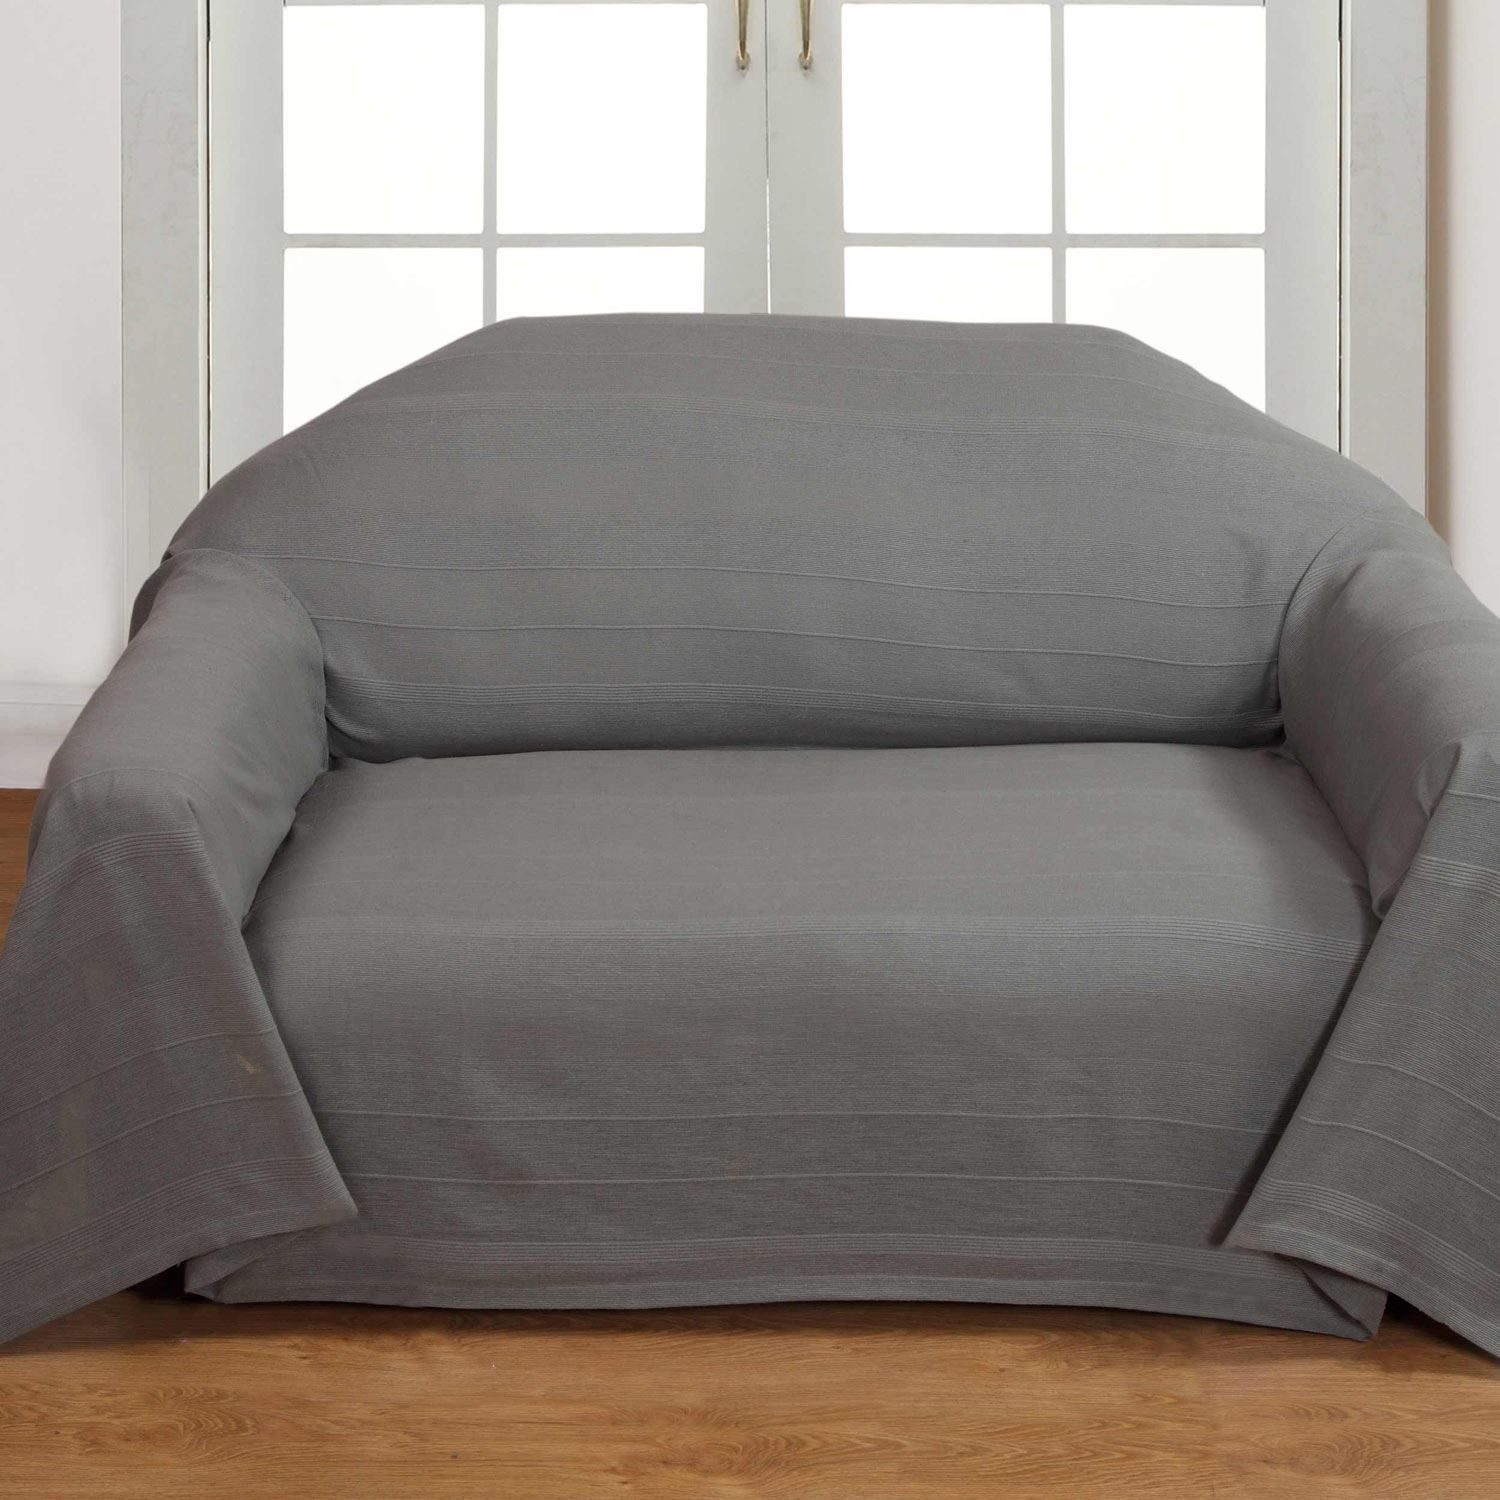 Marvelous Grey Sofa Throw Covers In 2019 Grey Sofa Throw Sofa Throw Ncnpc Chair Design For Home Ncnpcorg